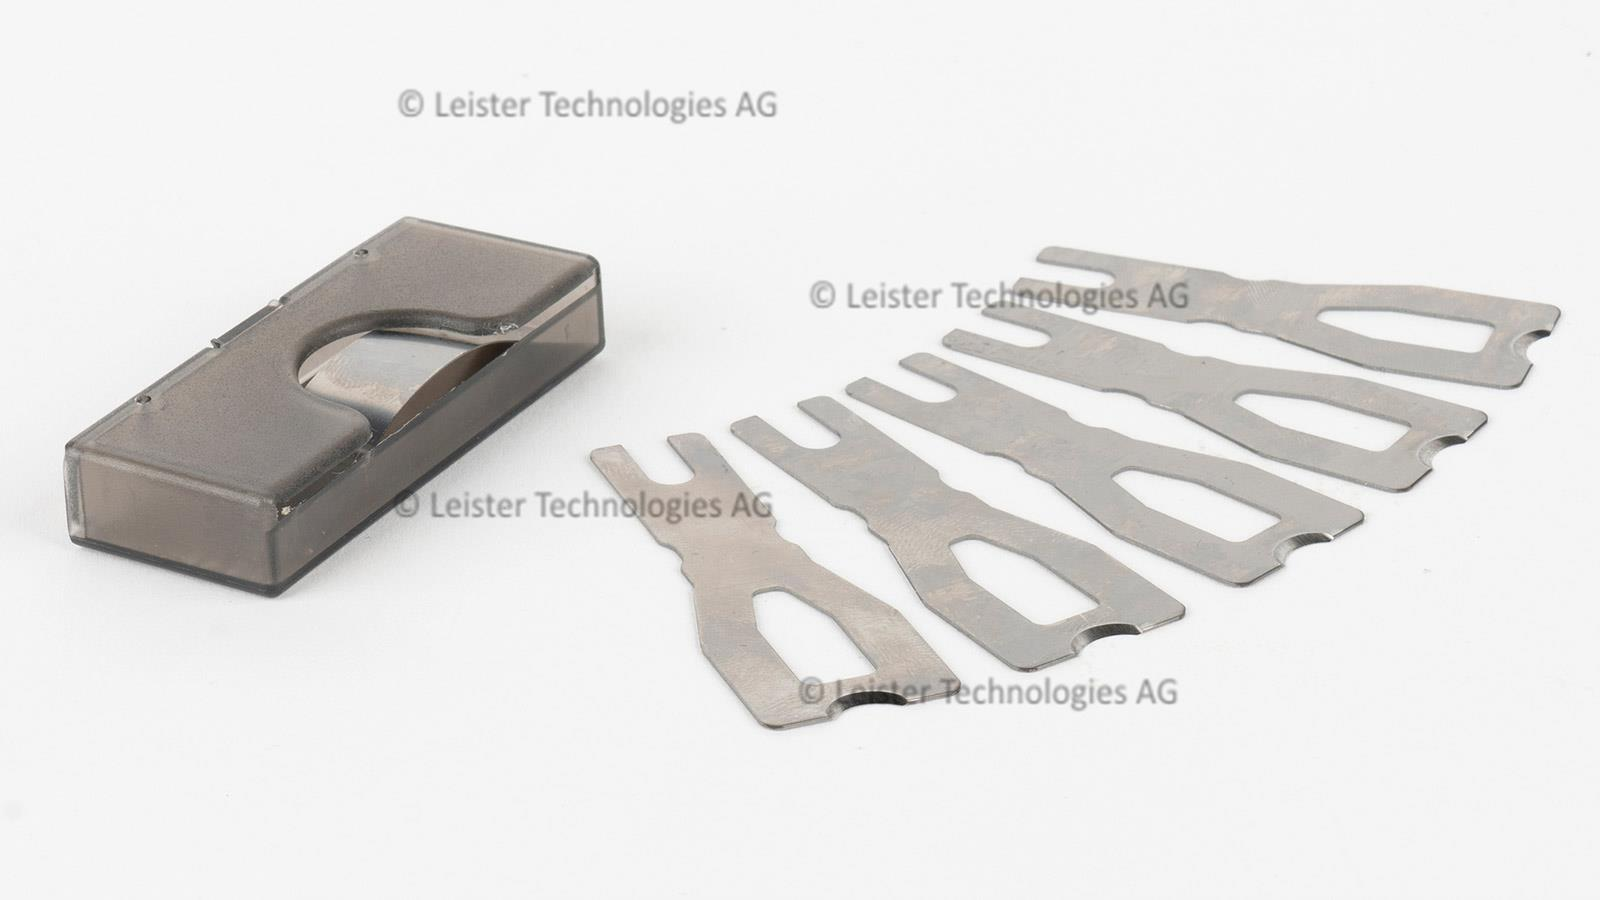 https://leister.azureedge.net/-/media/images/leister_internet/335-ltag-pw-ph-accessories/leister-accessories/messer/117_005_spare_blades_trimming_knife.jpg?revision=bba038cb-6003-4506-b9f5-ce7d308fe48e